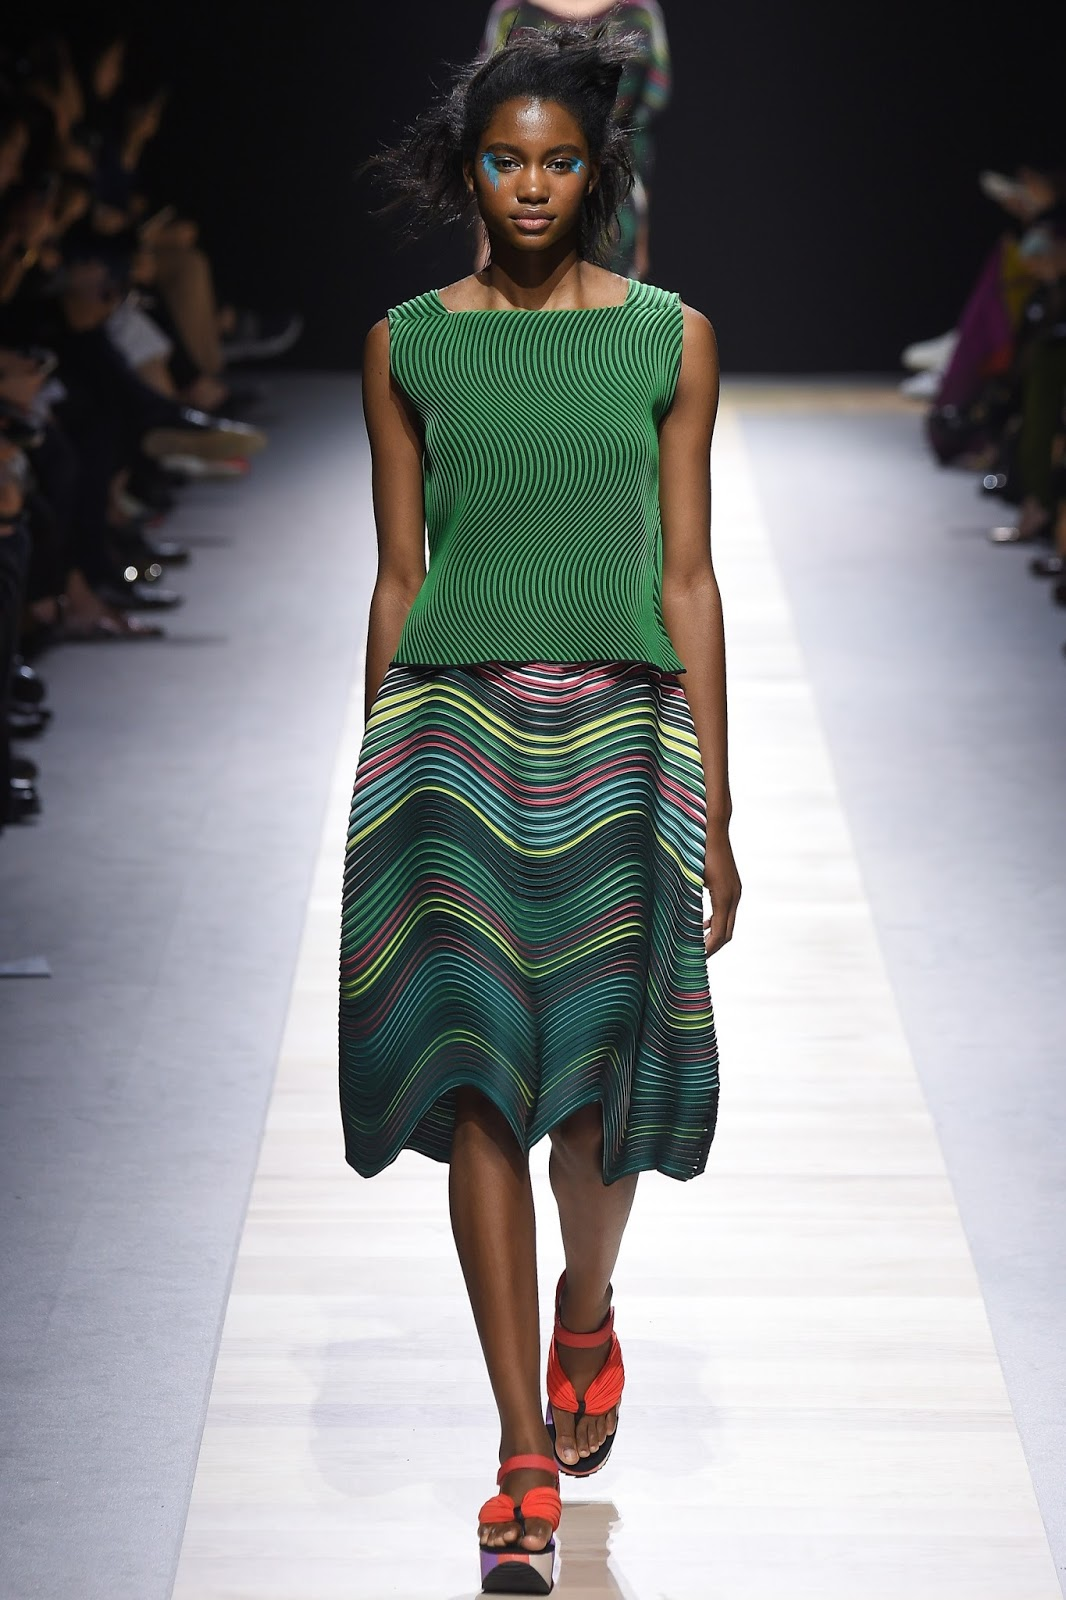 Pantone colour report & spring summer 2016 fashion trends / green flash at Issey Miyake Spring/Summer 2016 via www.fashionedbylove.co.uk British fashion & style blog